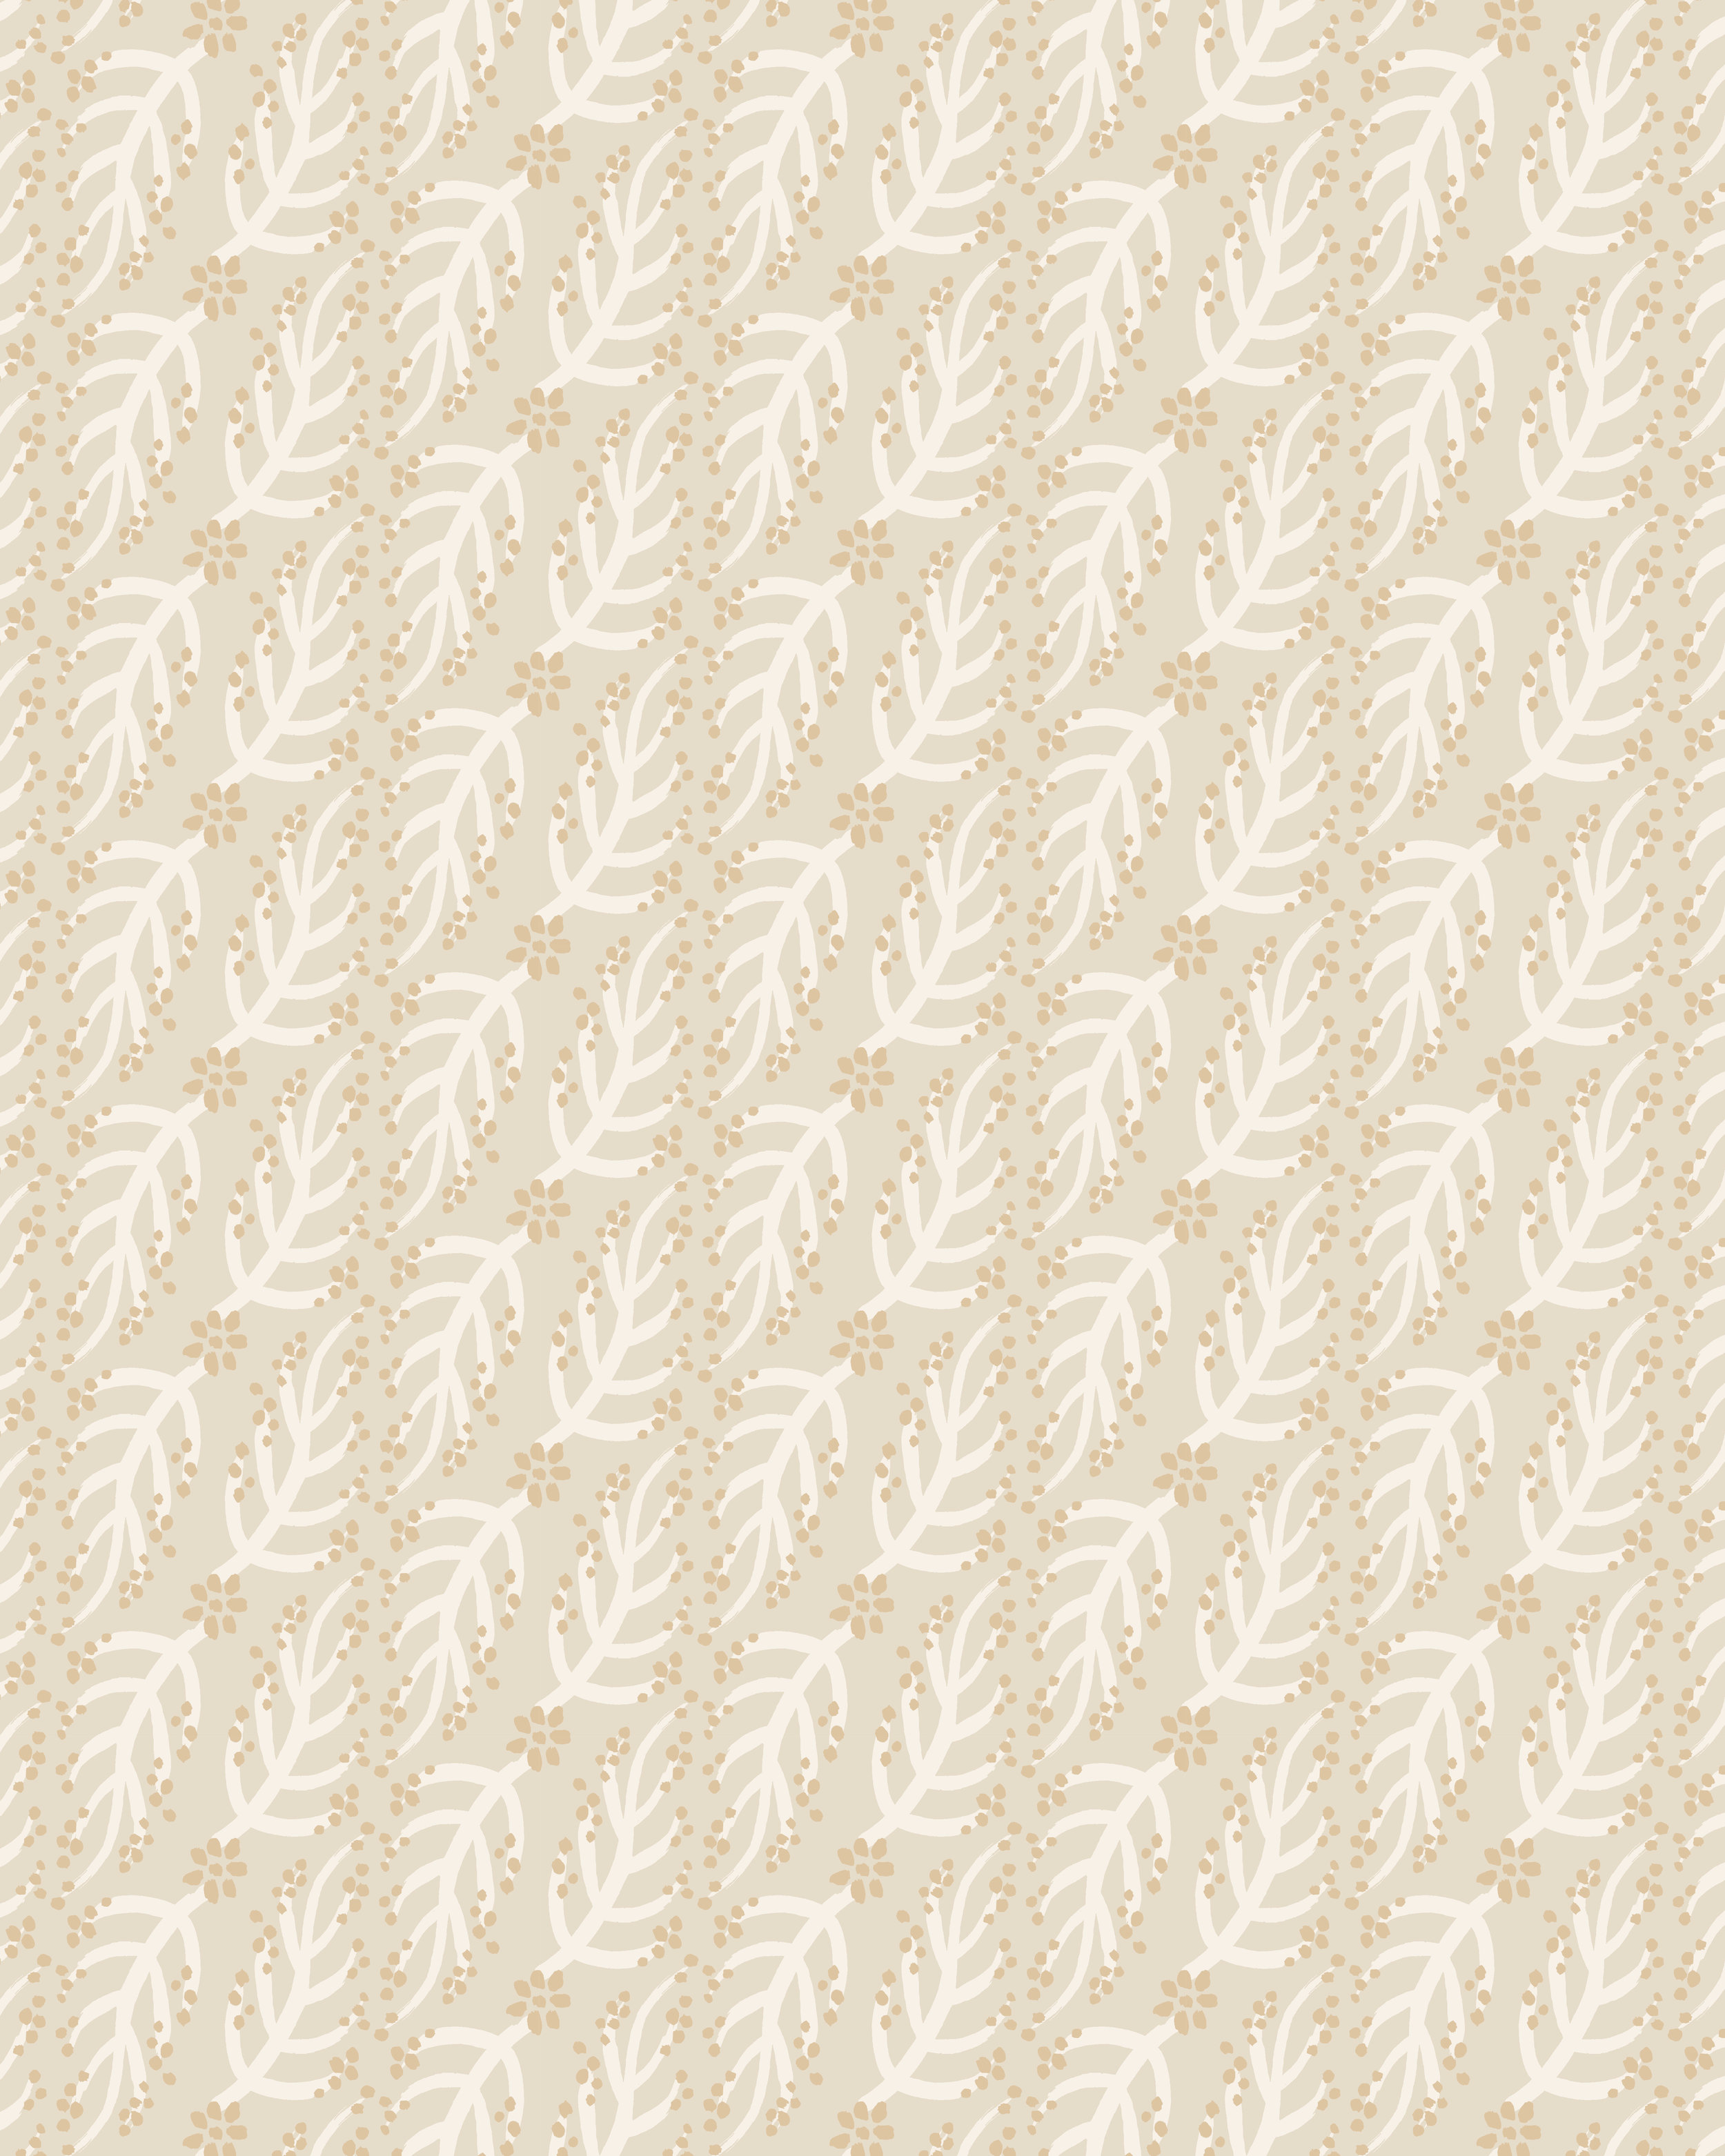 SPRIG STRIPE REPEAT antique gold.jpg